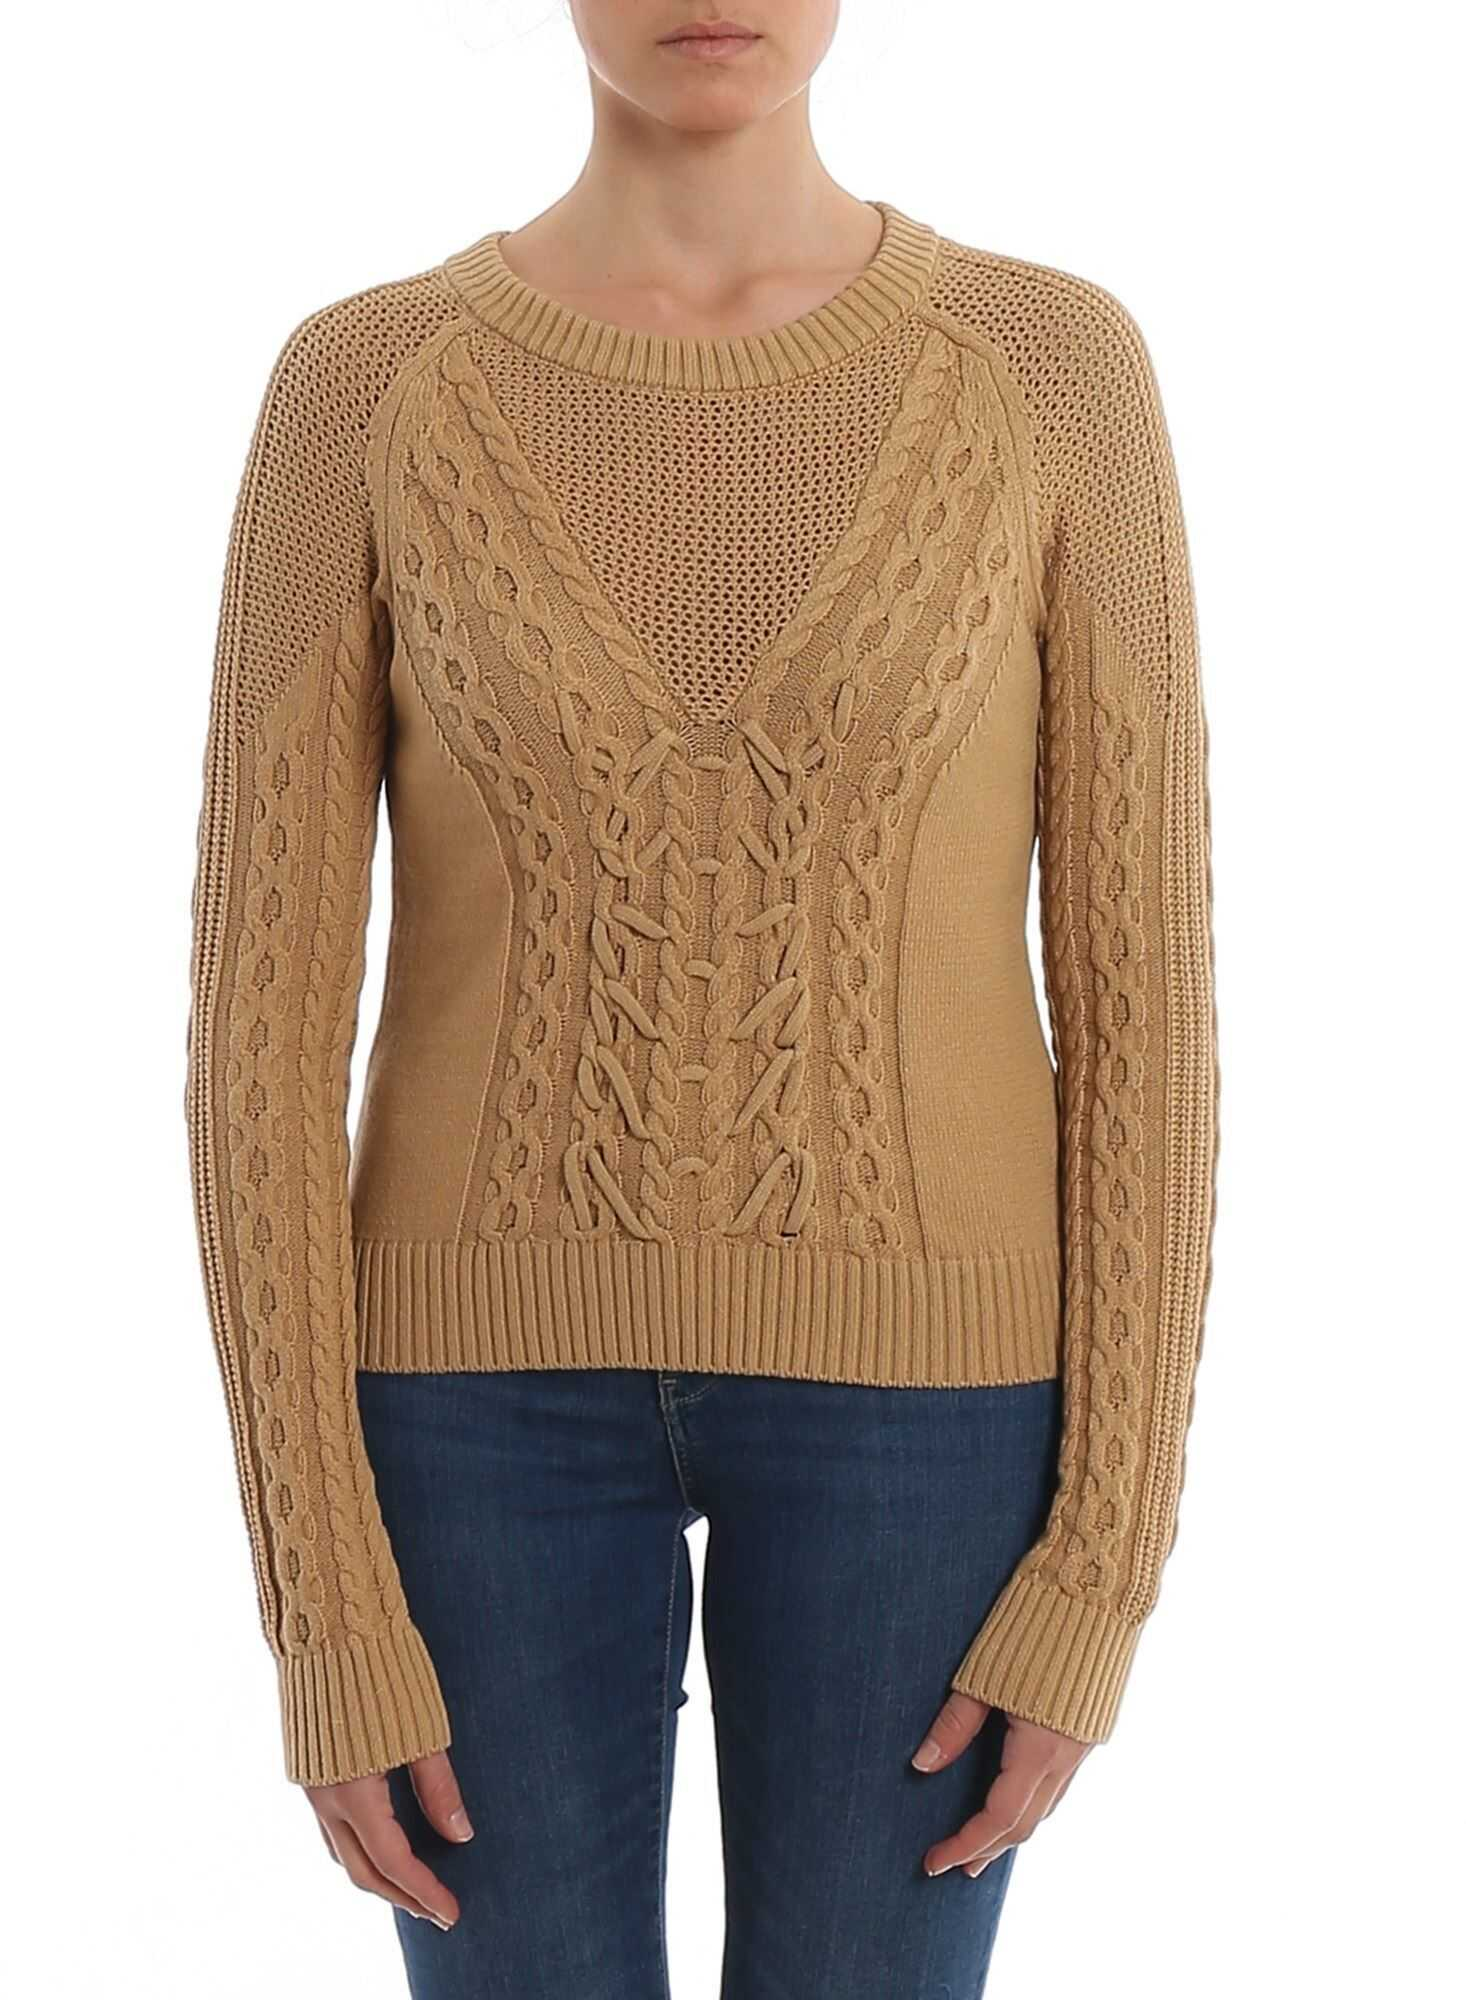 Patrizia Pepe Woven Knitted Crew Neck Sweater Brown